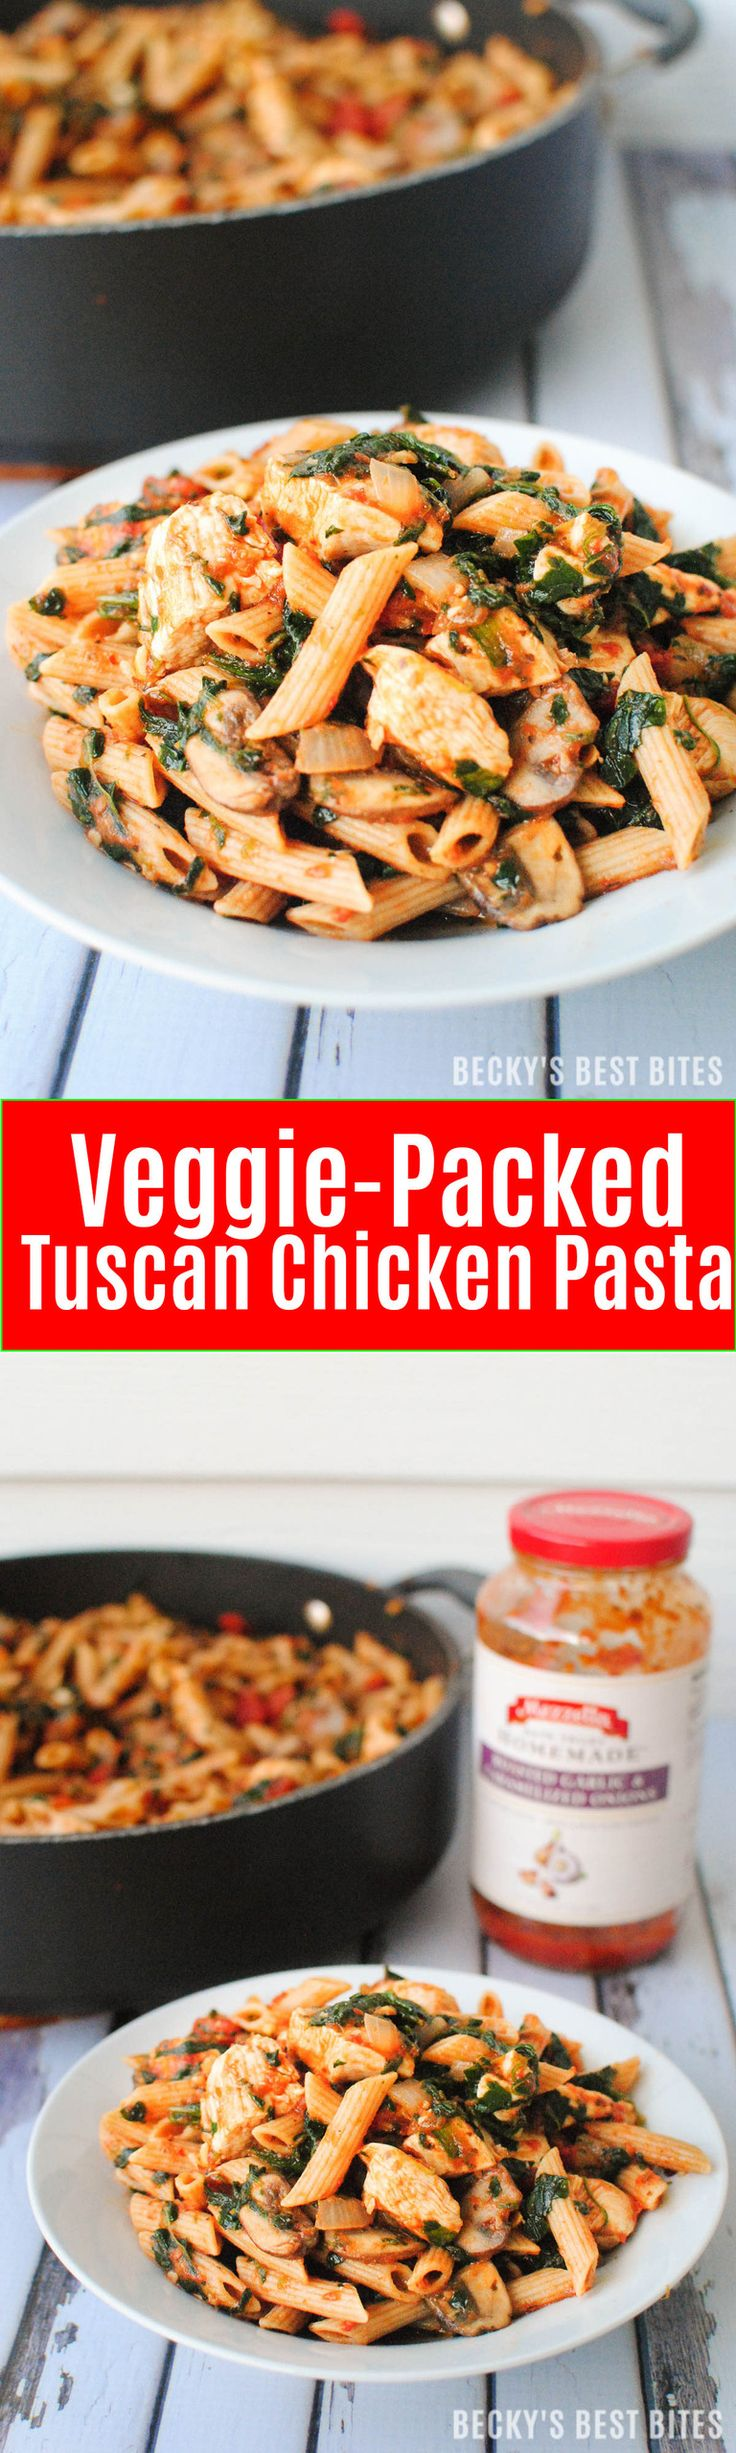 Veggie-Packed Tuscan Chicken Pasta - Get a tasty meal loaded with mushrooms, tomatoes and spinach on the table in 30 minutes.